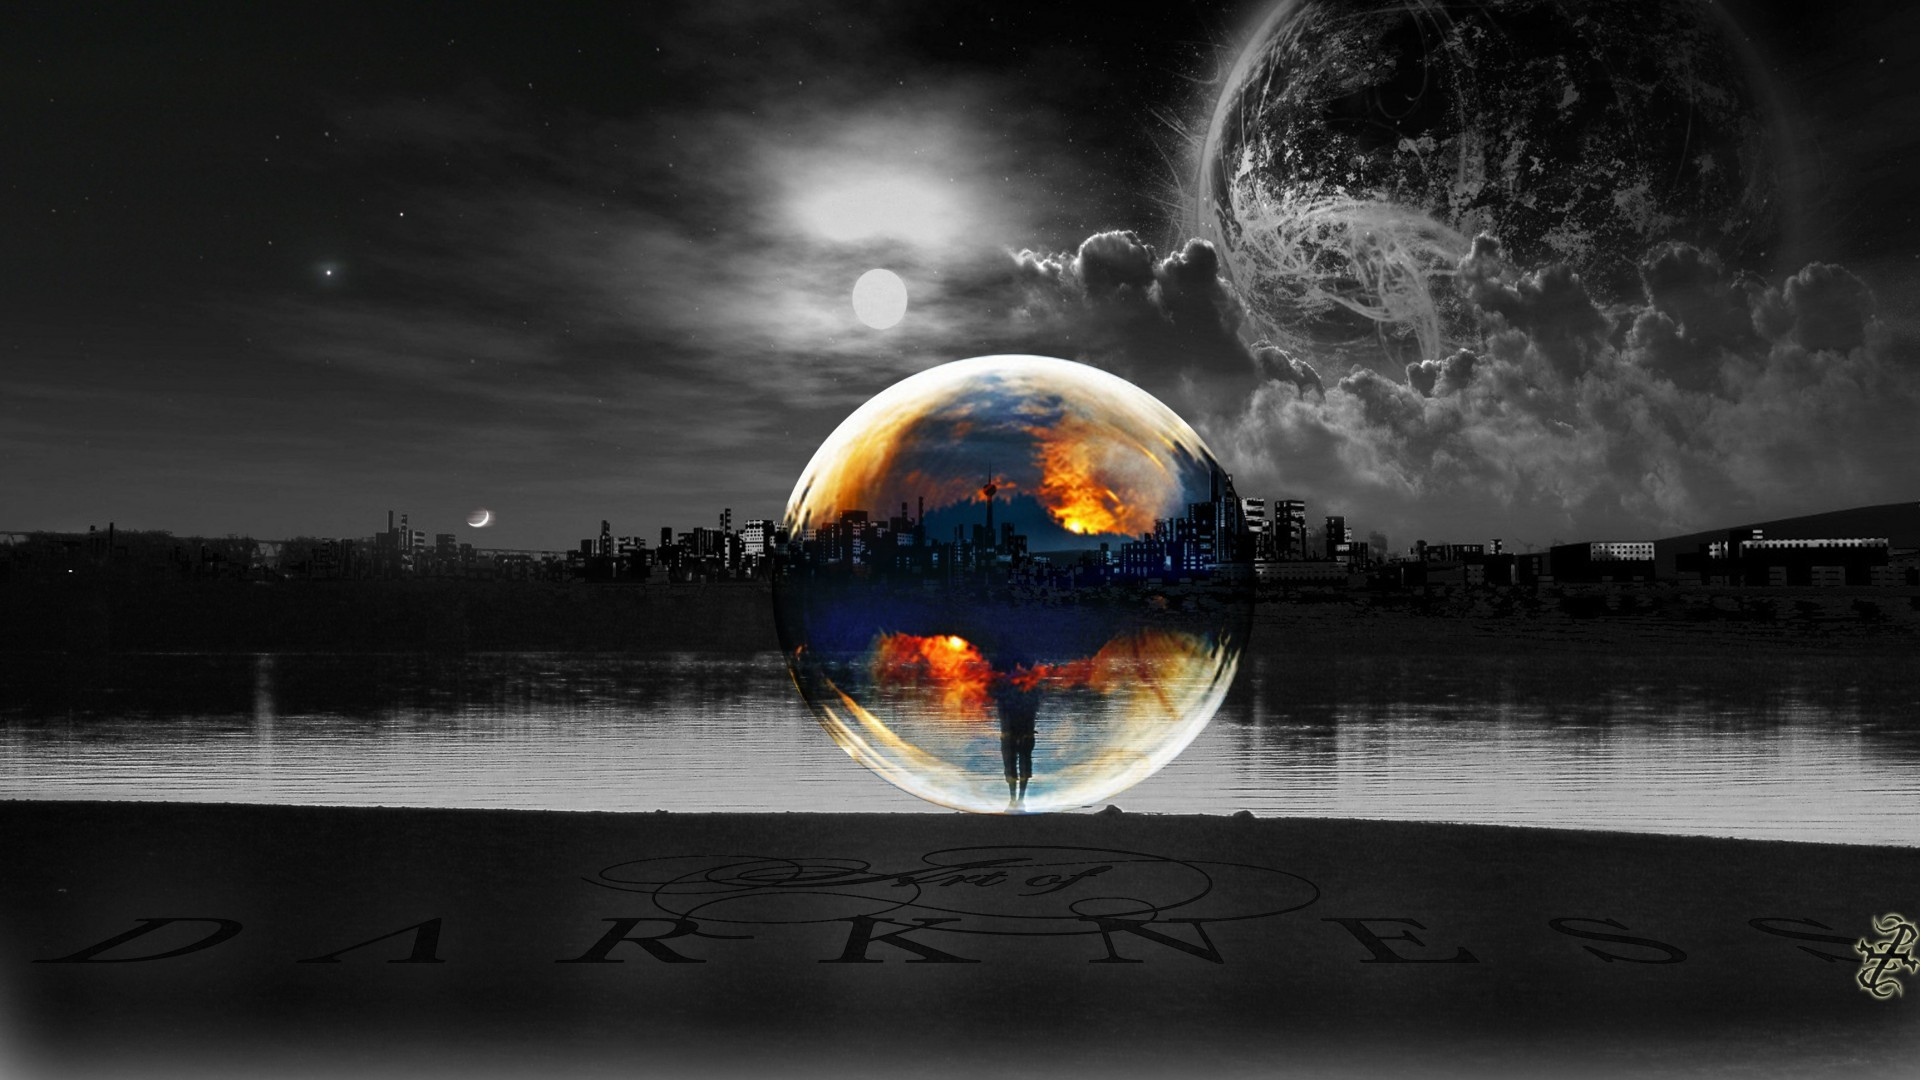 1920x1080 Selective, Coloring, Moon, Lakes, Sun, Bubbles, Cityscapes, Planets, Wide,  Hd, Wallpaper, Download Wallpaper, Cool Images, Widescreen, 1920×1080  Wallpaper ...